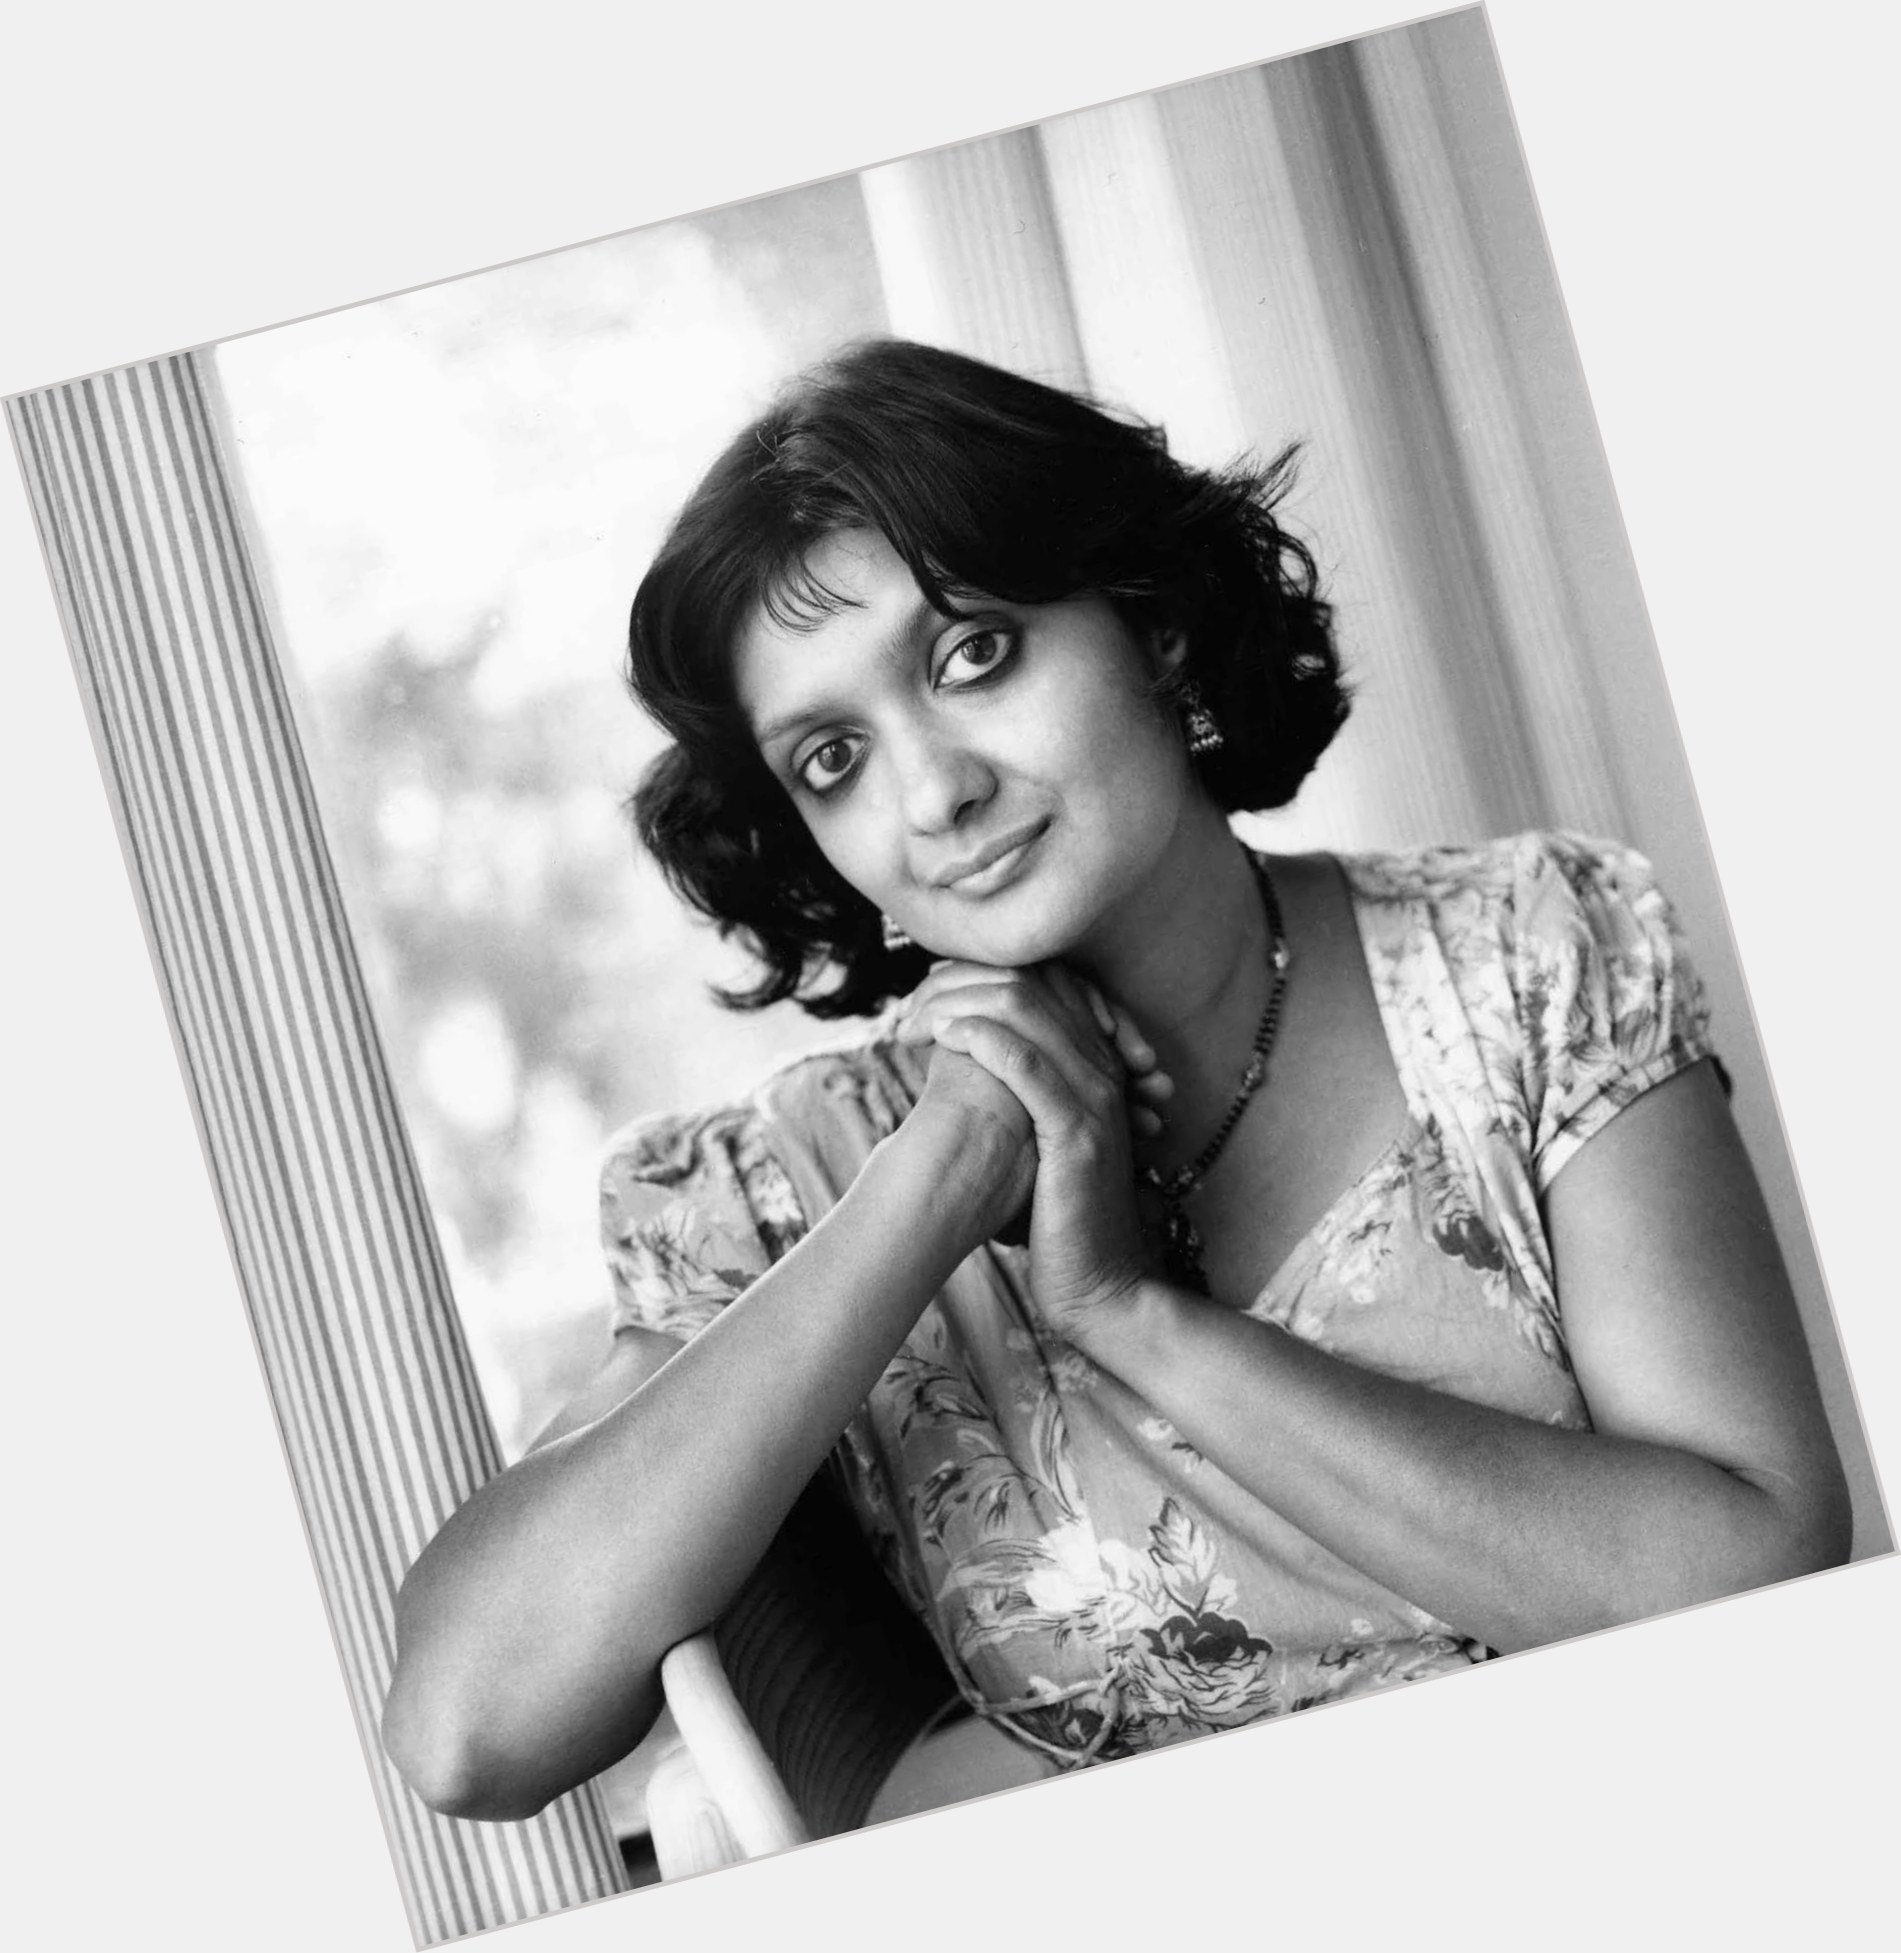 sujata bhatt the stare View sujata bhatt's profile on linkedin, the world's largest professional community sujata has 1 job listed on their profile see the complete profile on linkedin and discover sujata's connections and jobs at similar companies.